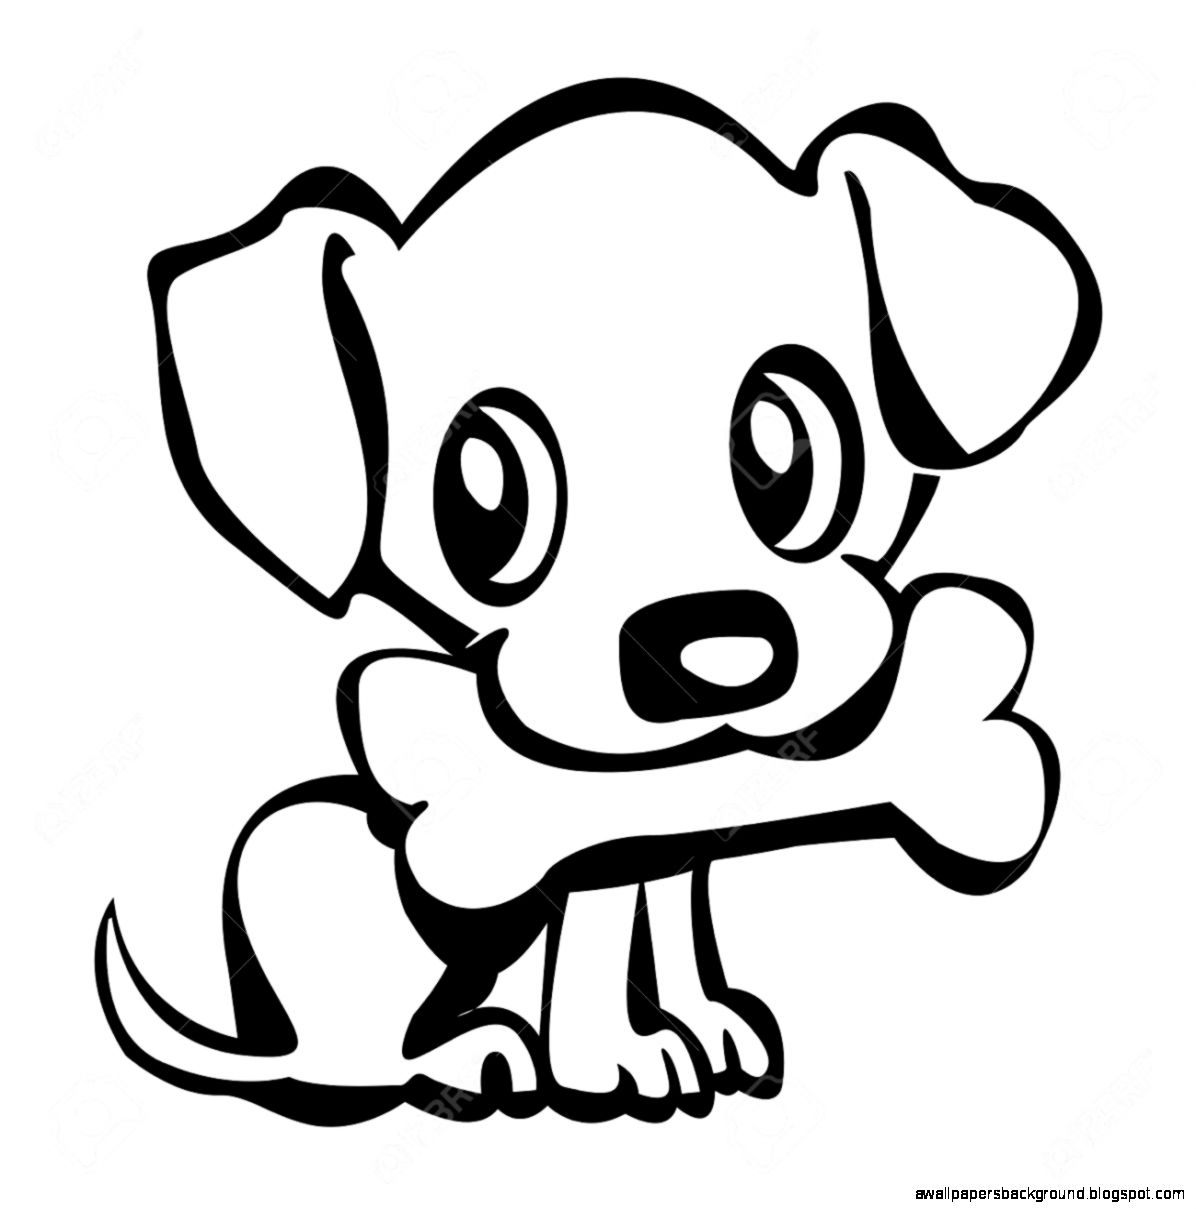 Easy Dog Drawing For Kids   Free download on ClipArtMag